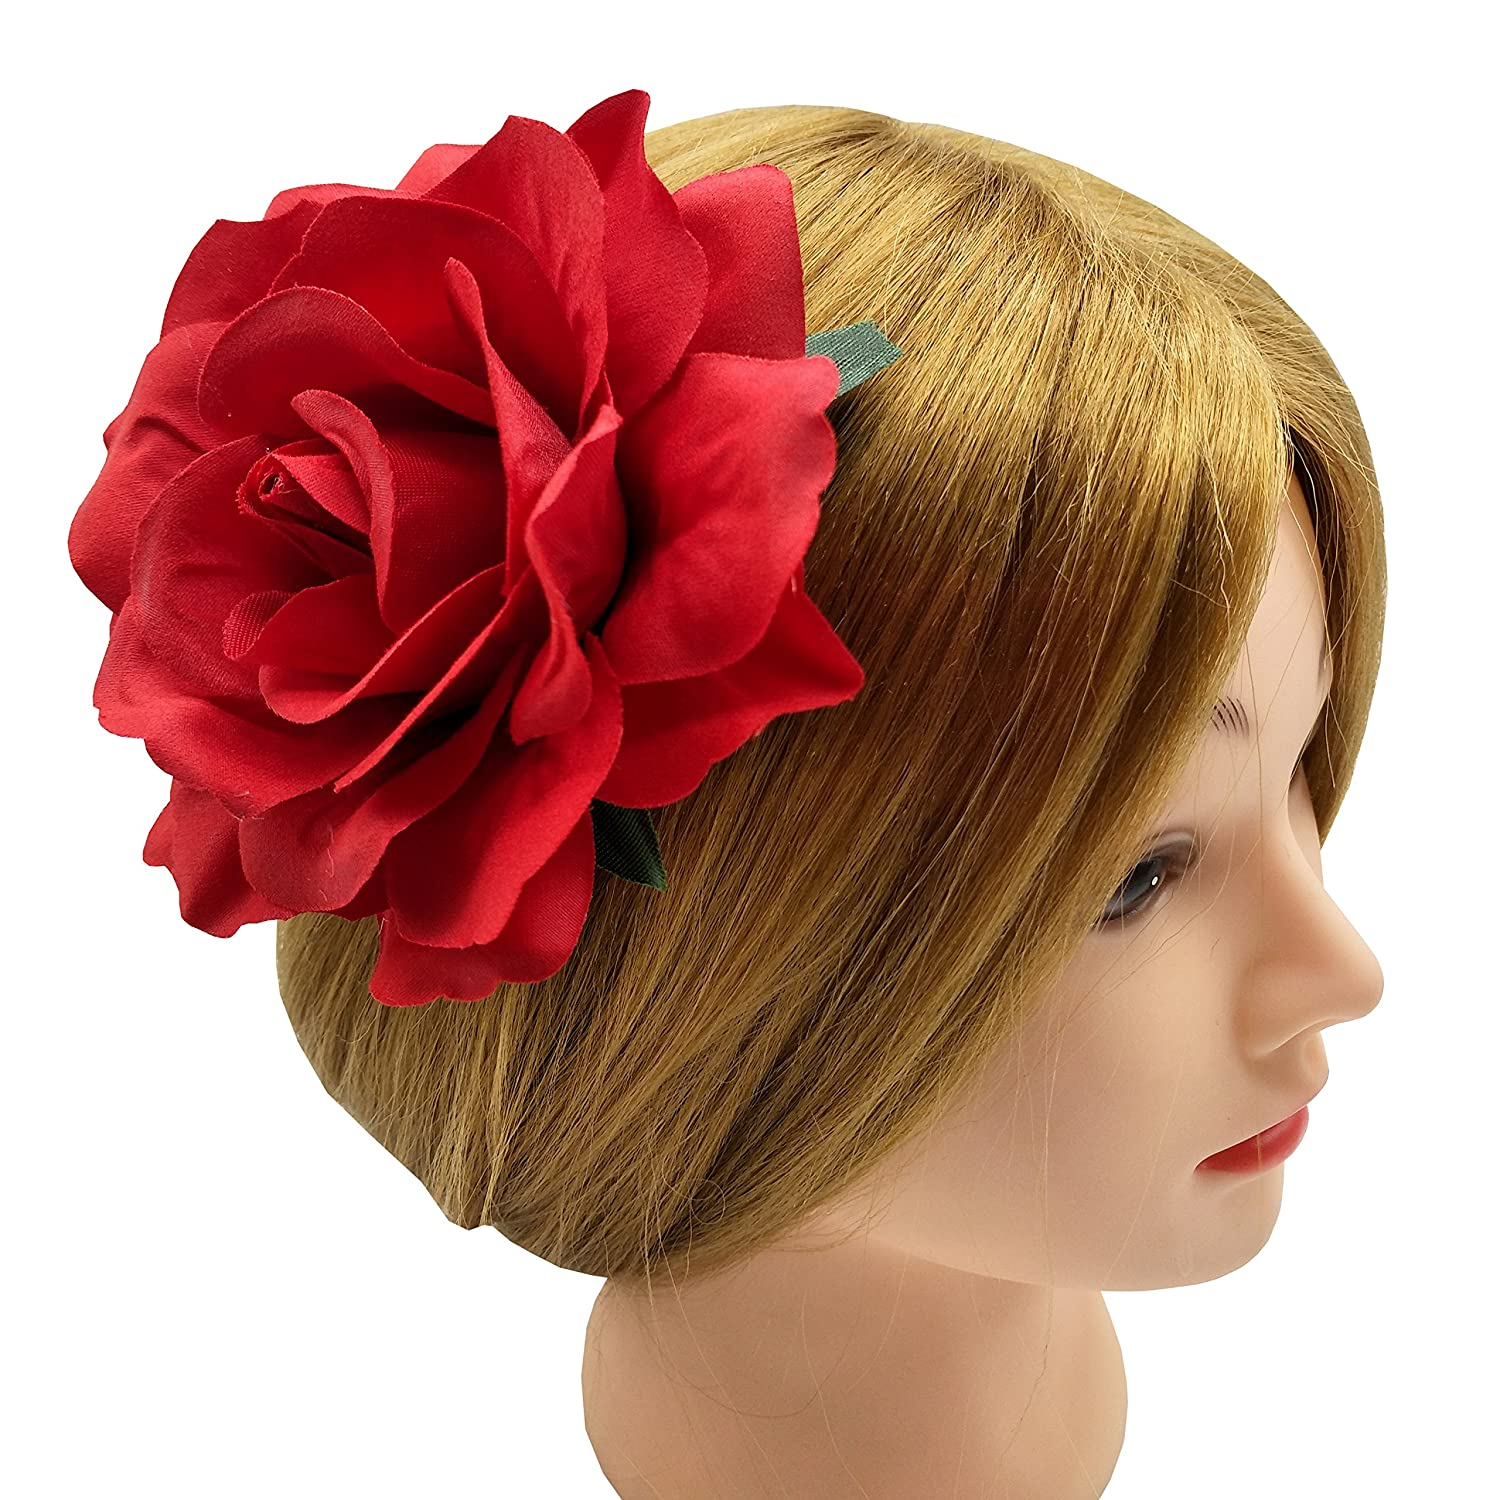 Girl's Hair Accessories Apparel Accessories Frugal New Arrival Red High Quality Flower Hair Clip Womens Hair Accessories Hairpins Woman Bridal Wedding Hair Decorations